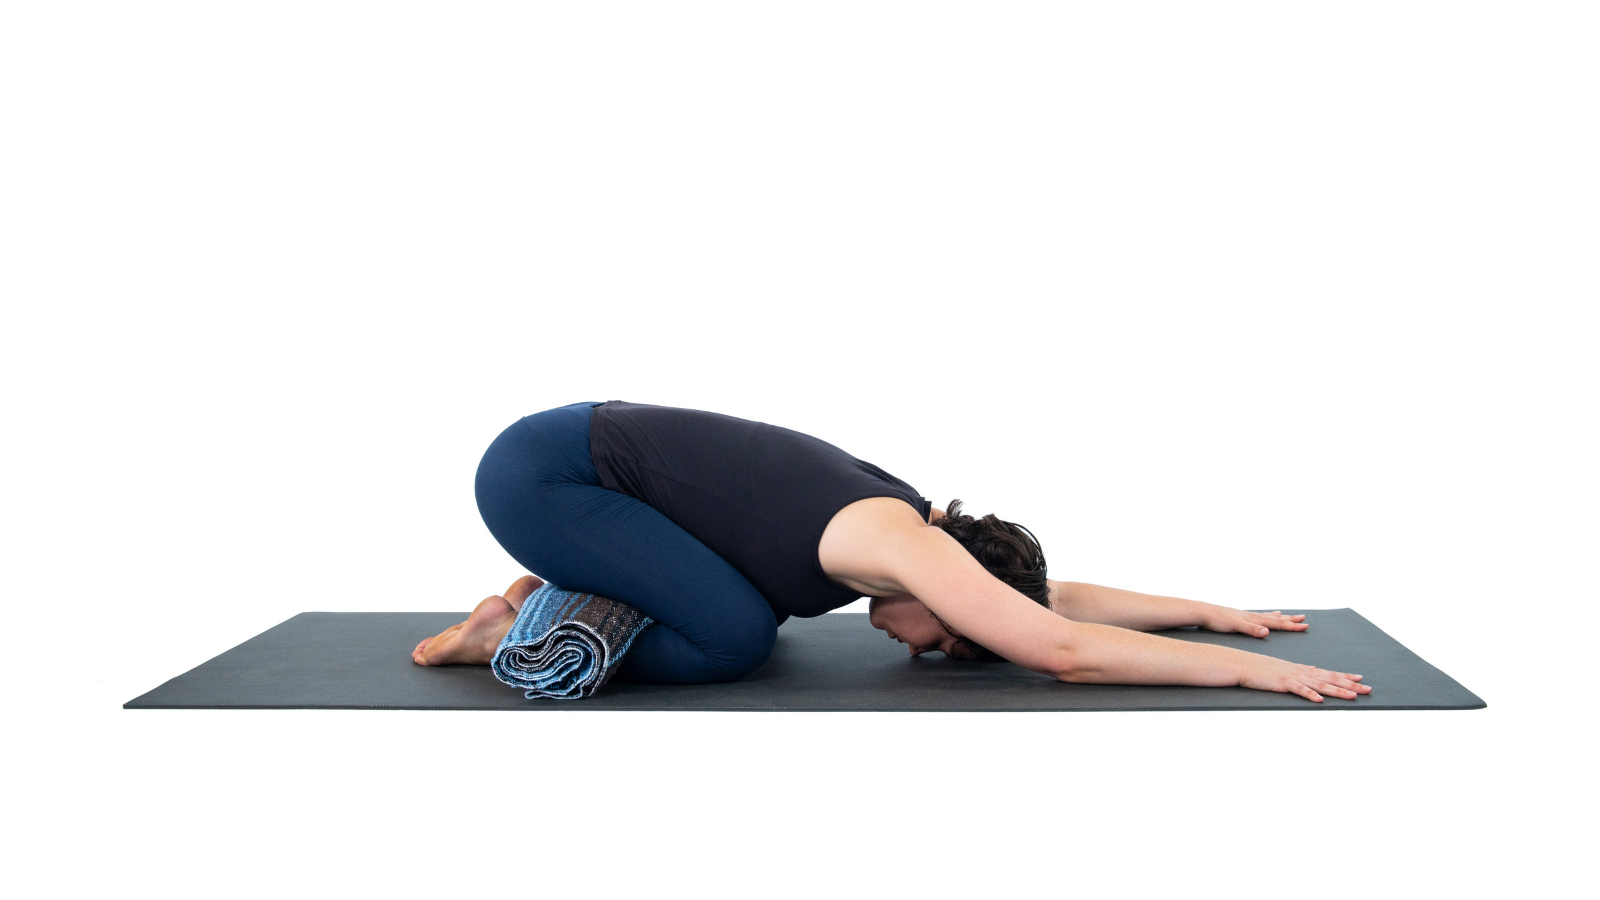 Child's Pose or Balasana is a grounding Vata and resting pose